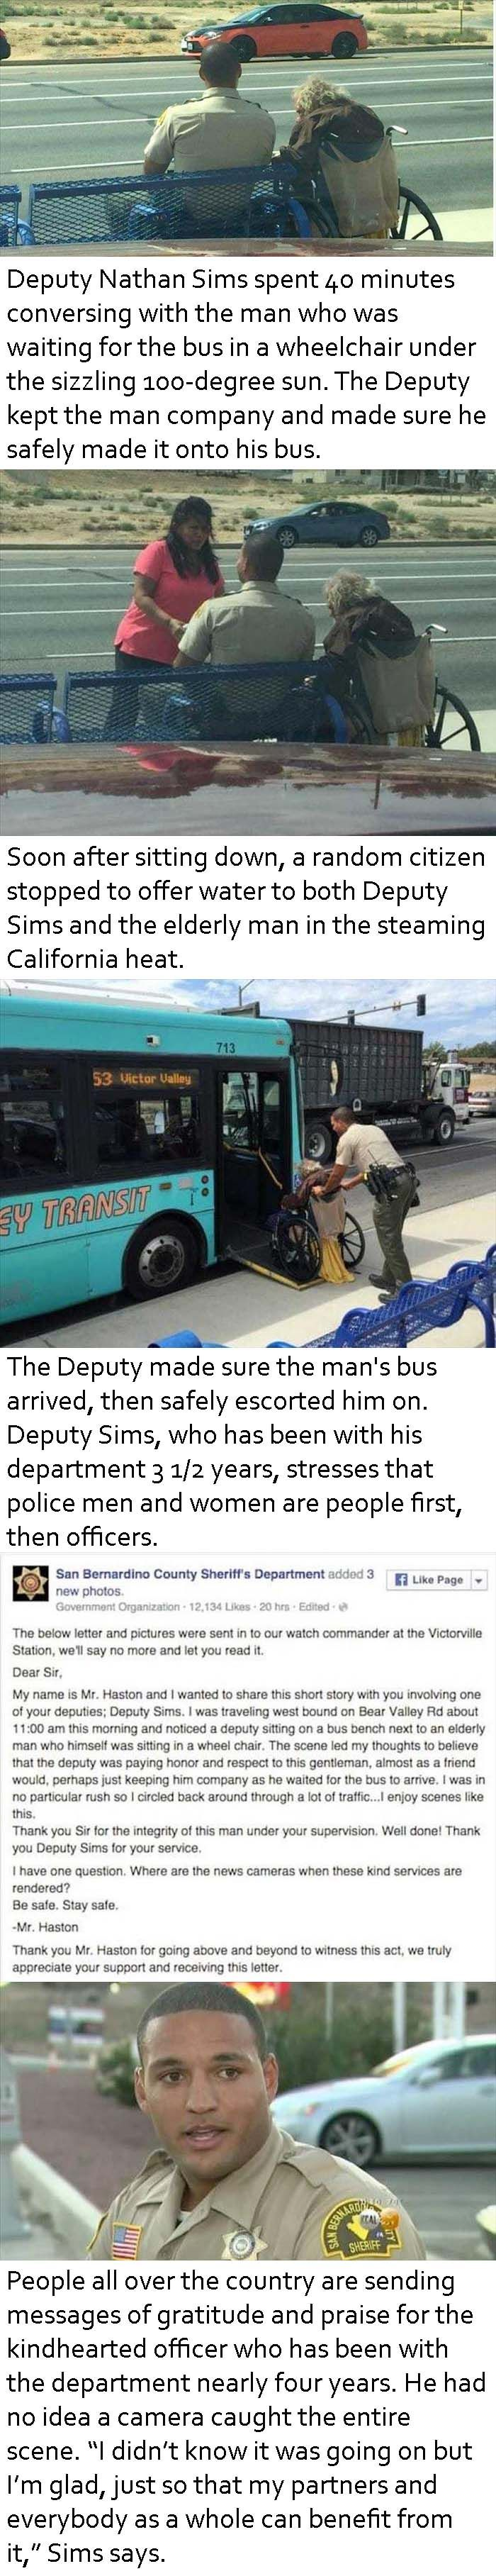 Faith In Humanity Restored – 4 Pics